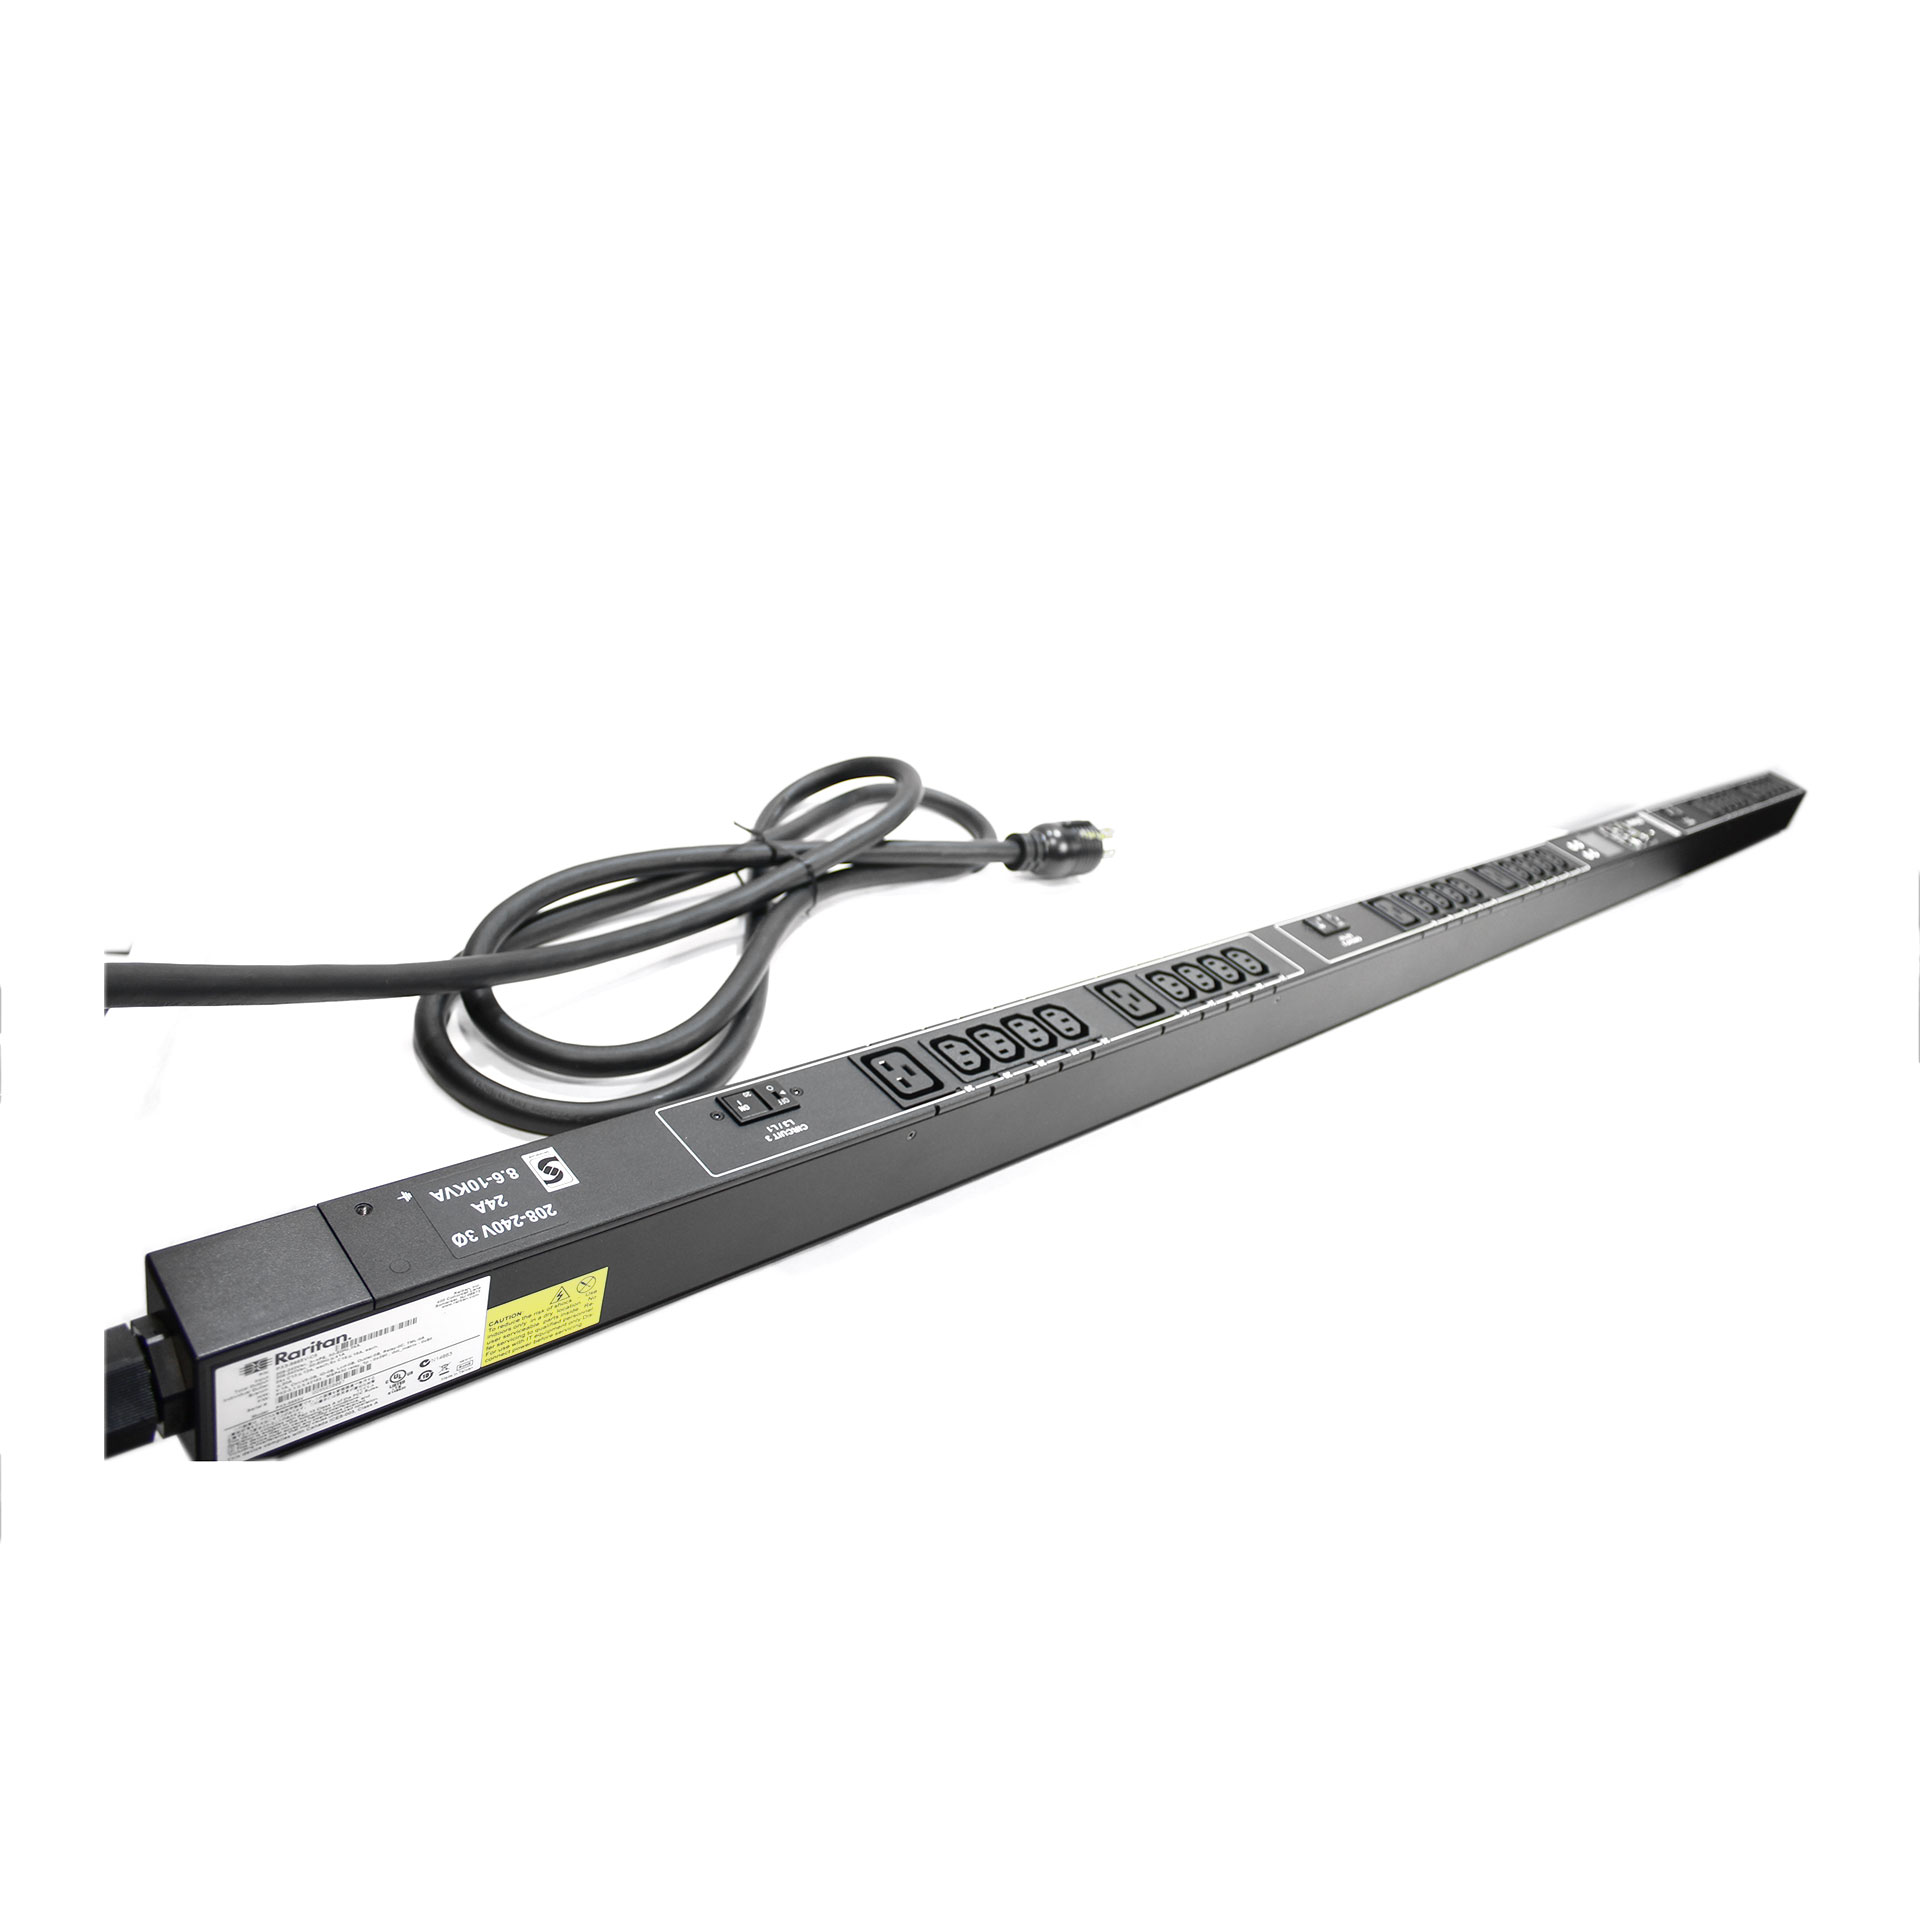 Raritan Dominion PX PX3-5665V-C5 30-Outlet Rack Mountable PDU